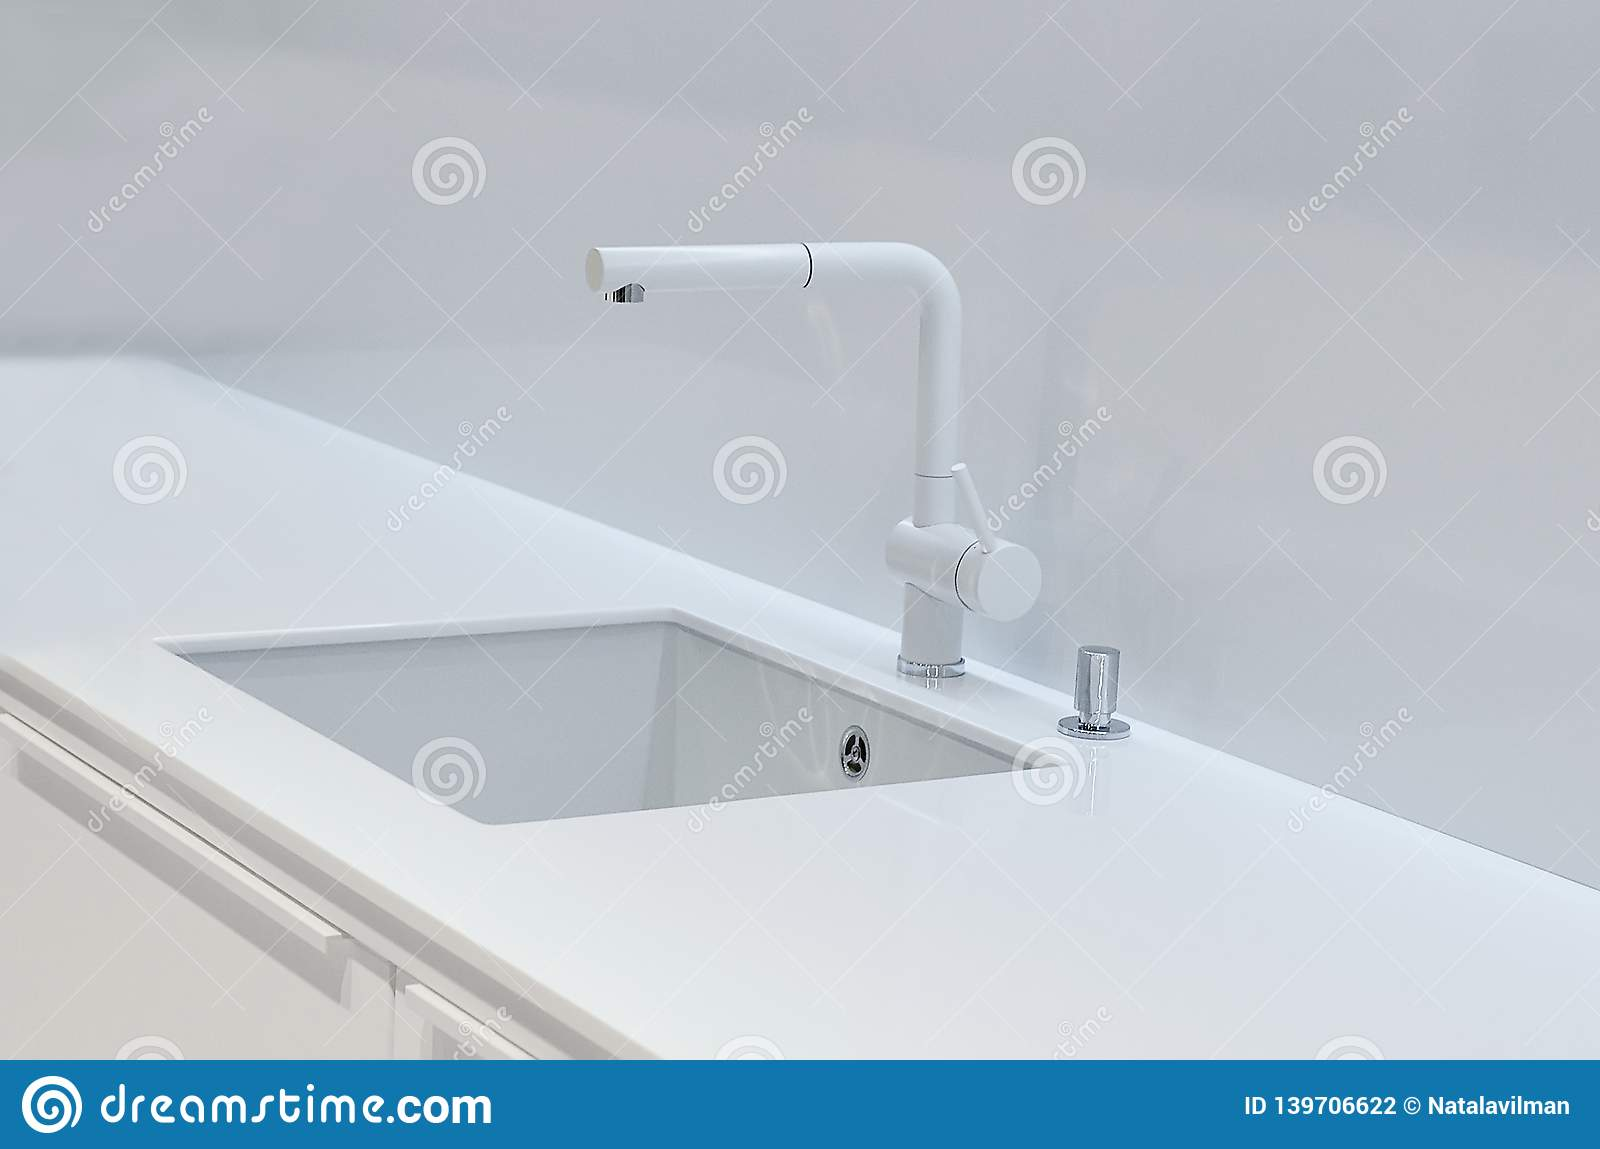 A new white kitchen sink made of artificial stone and a faucet. The concept of modern kitchen interior